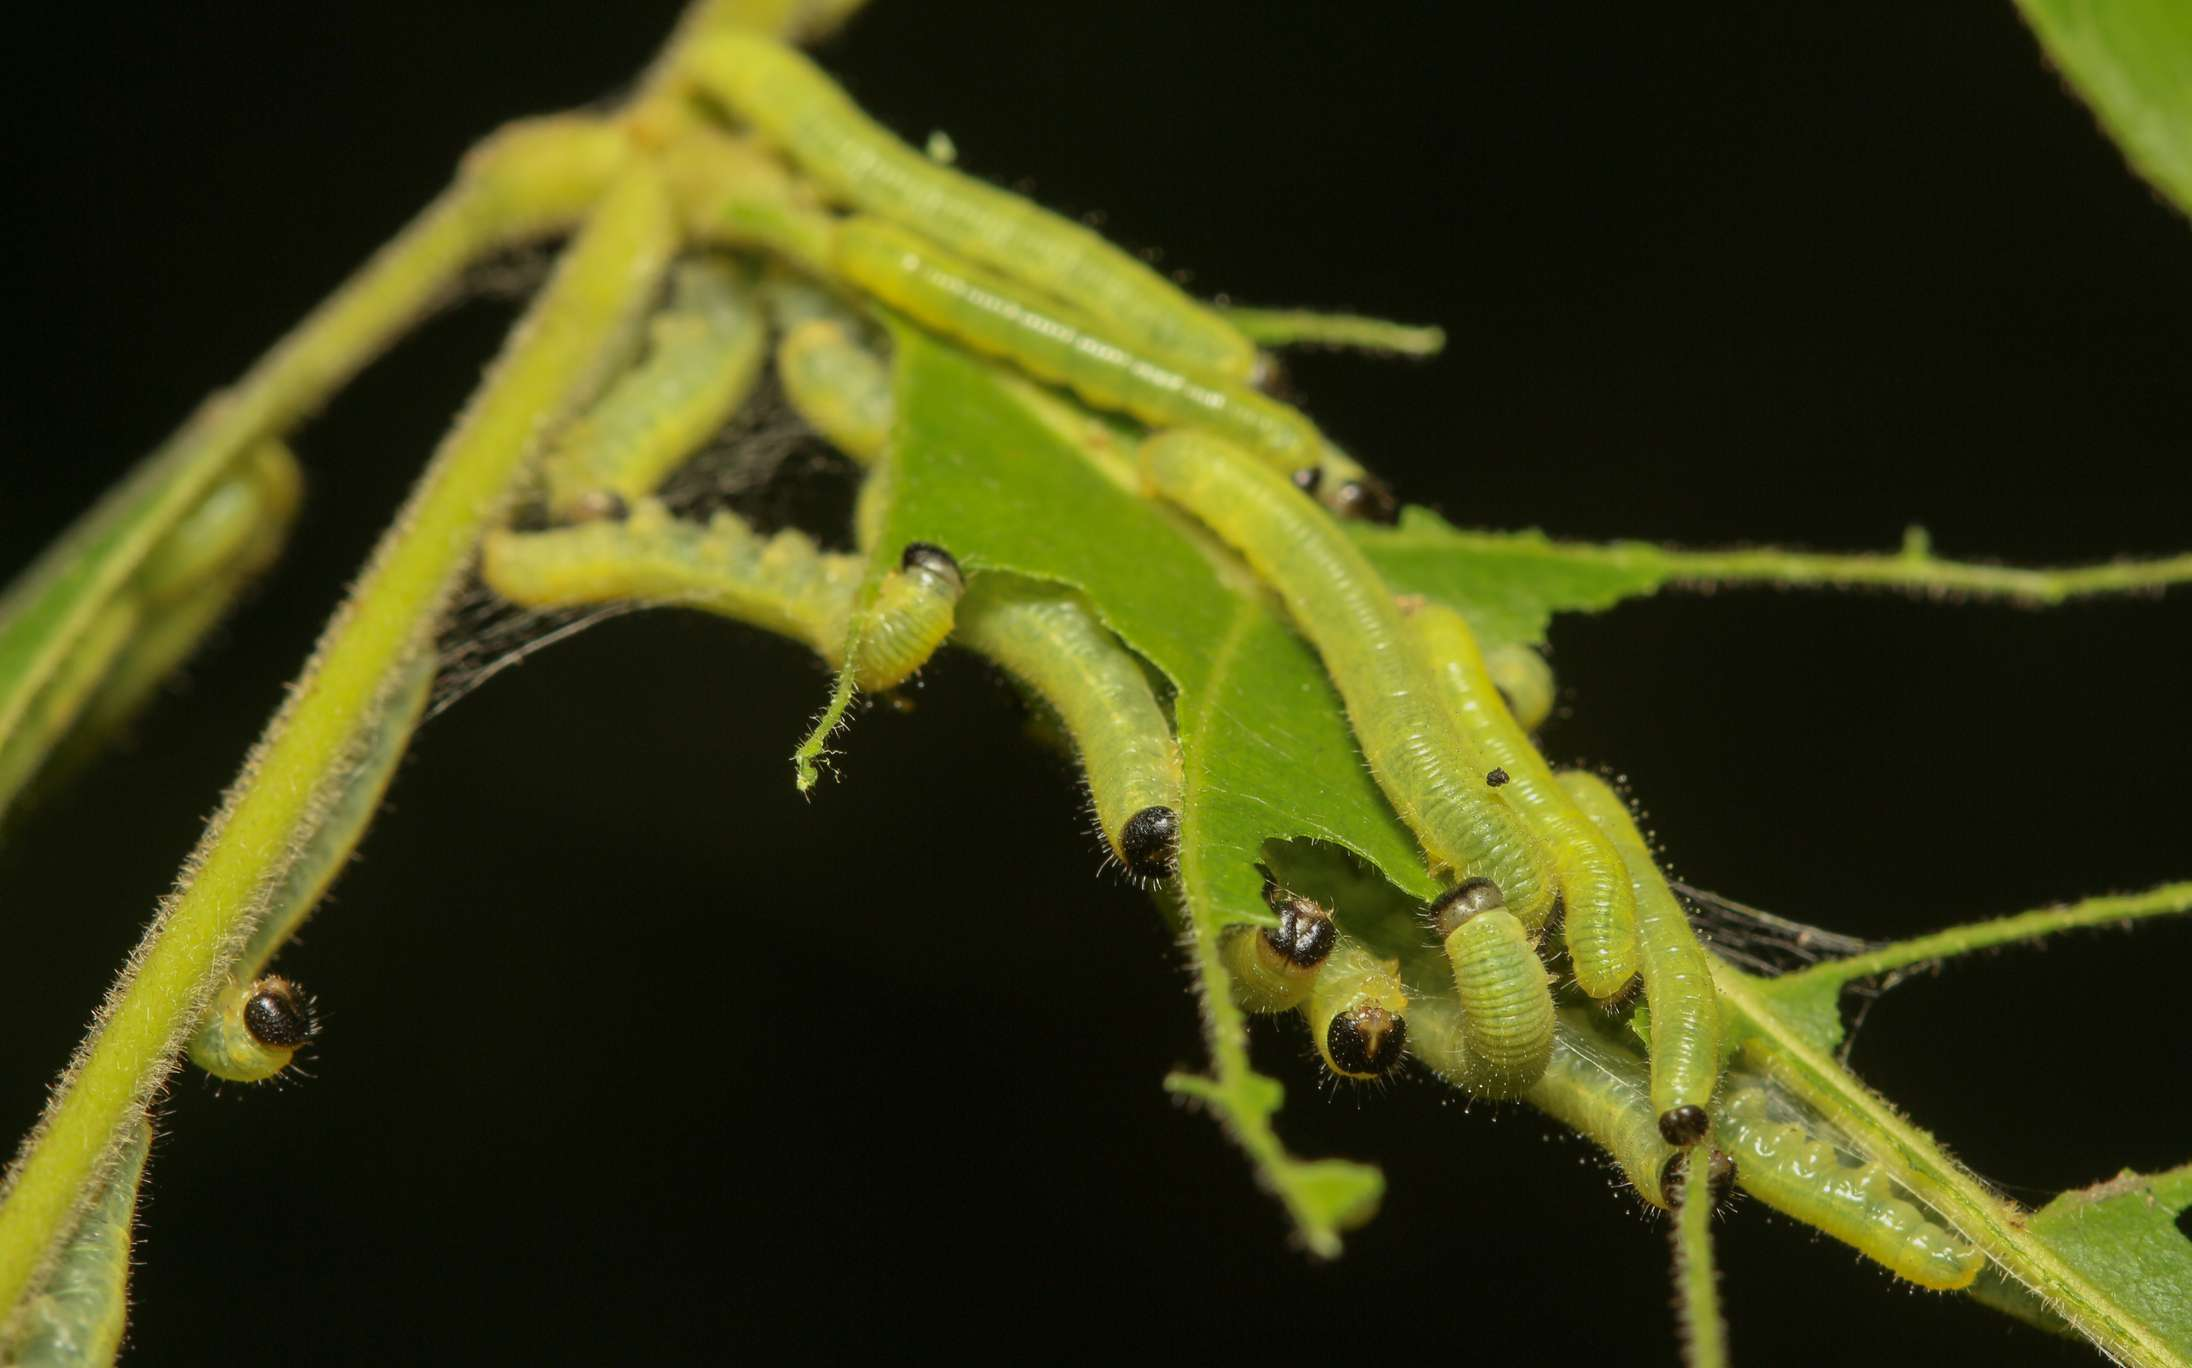 Typical sawfly damage where the larvae only eat the soft parts of a leaf